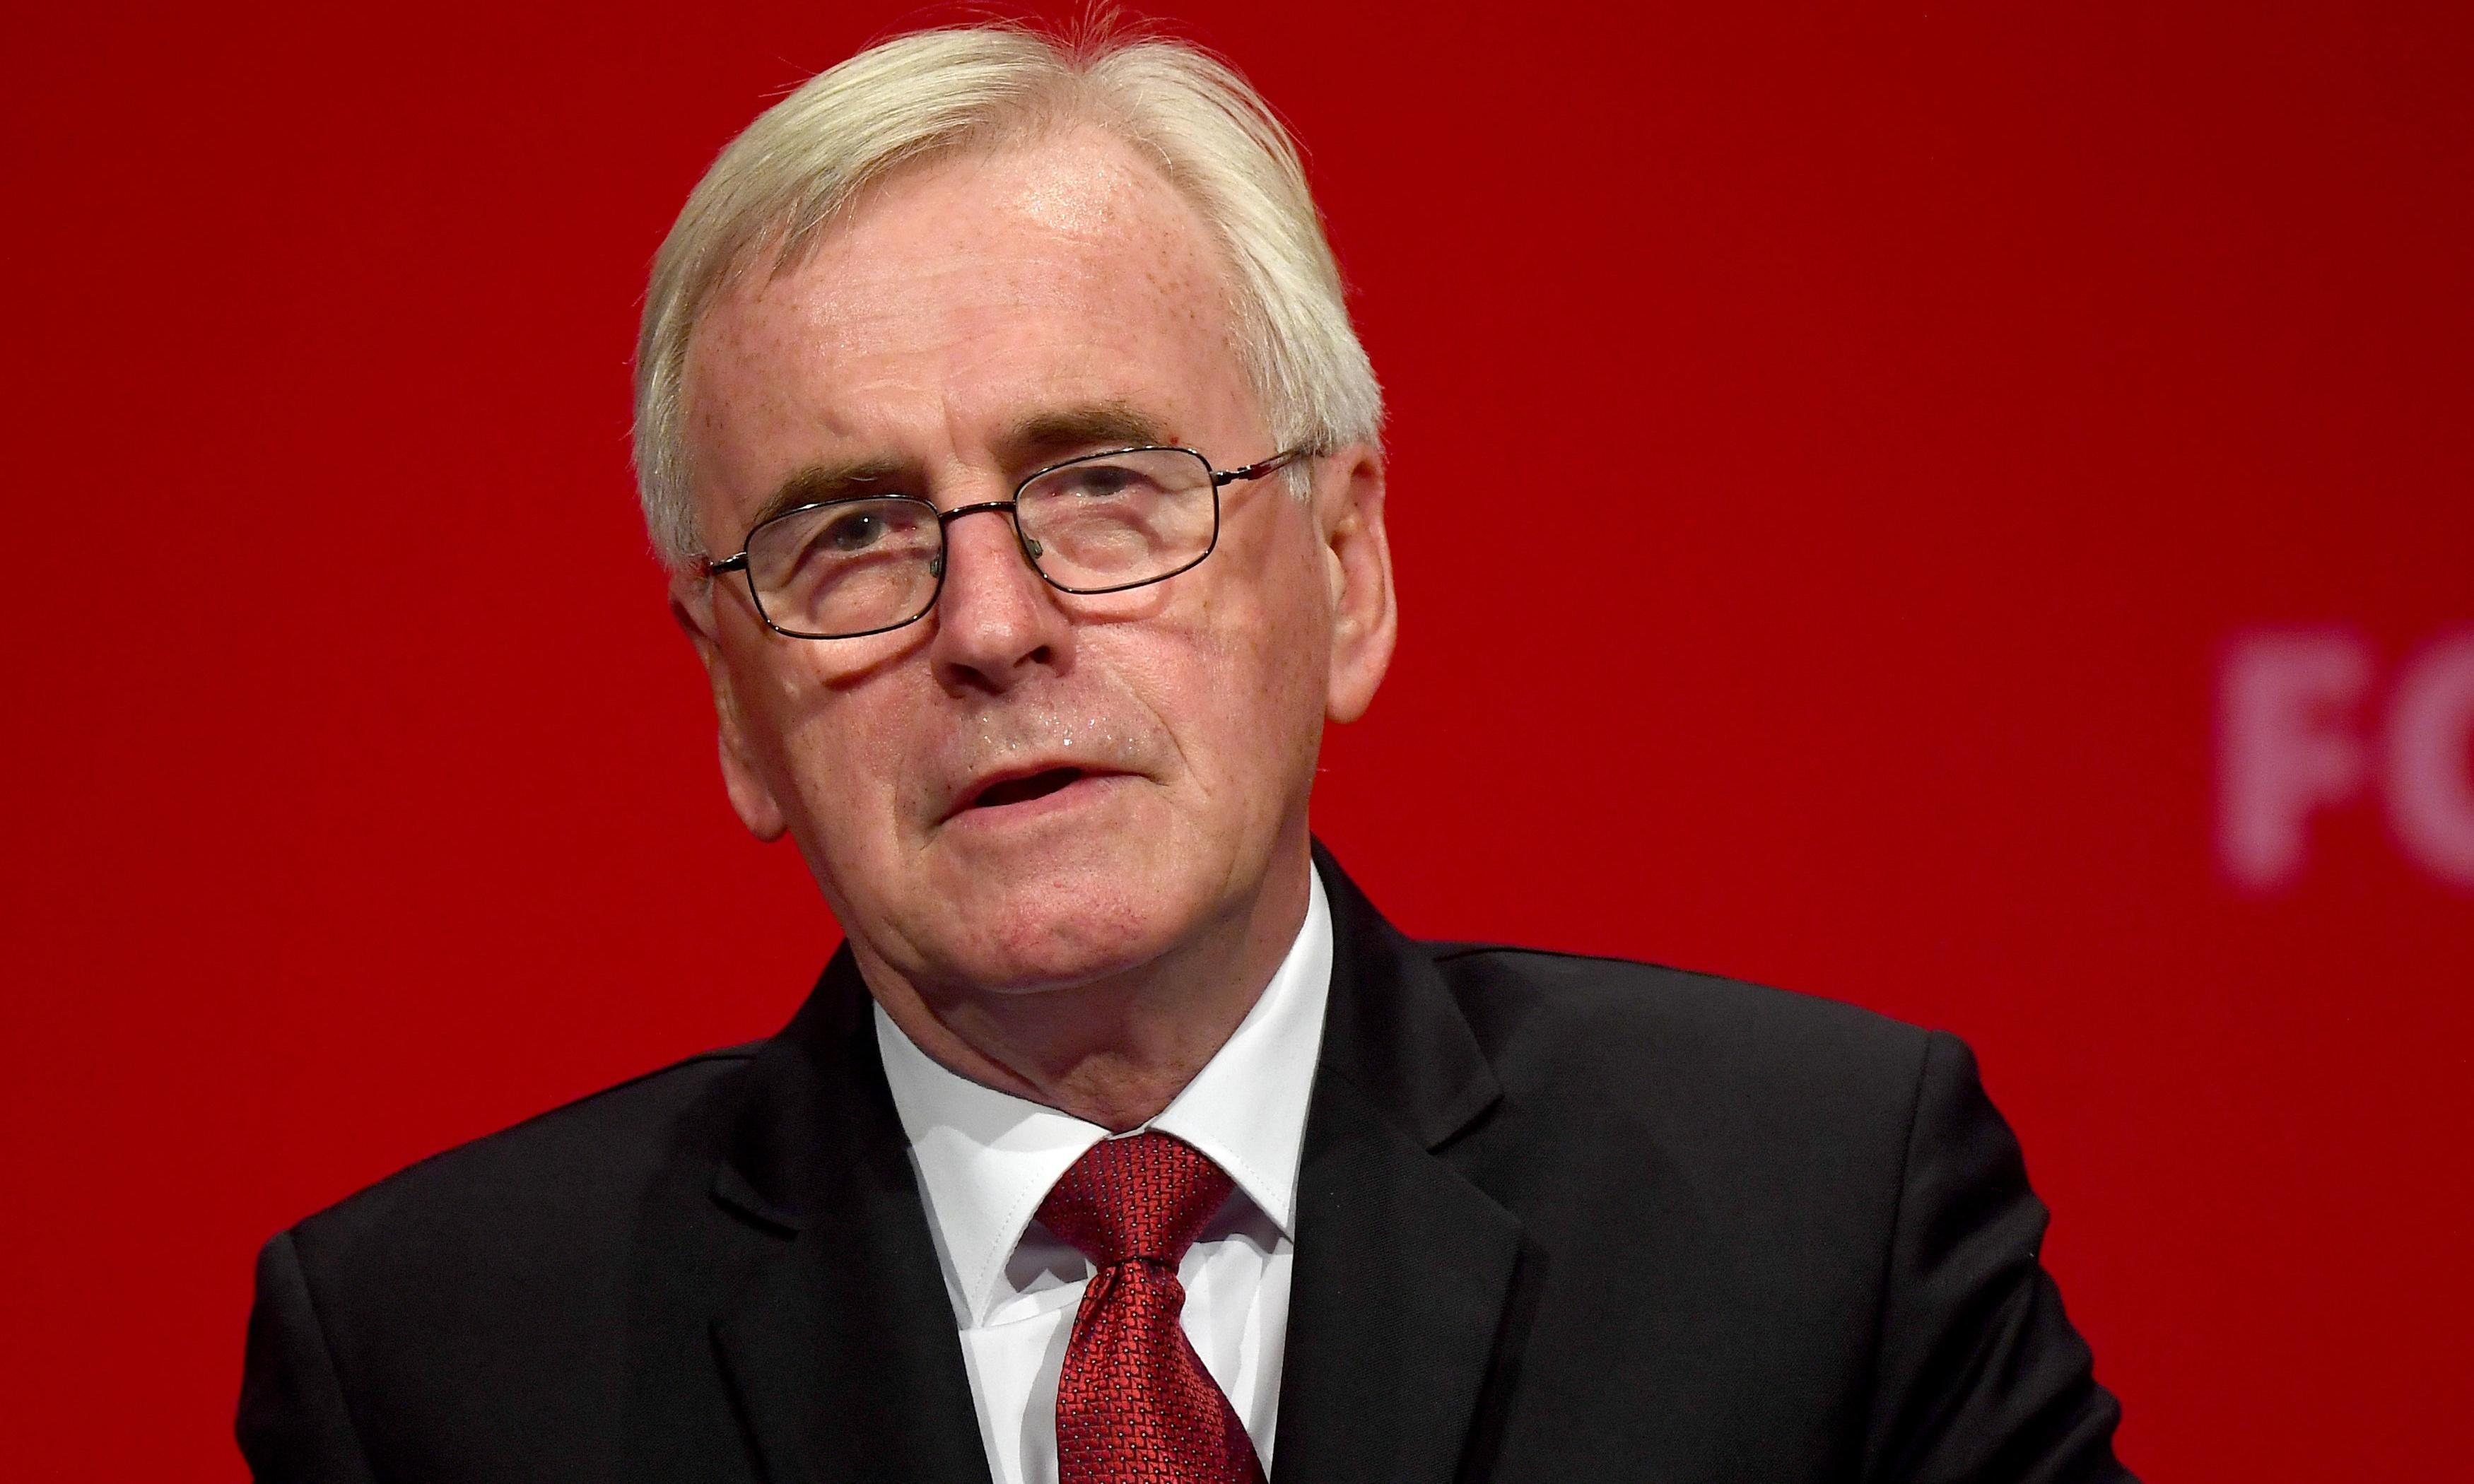 Labour plans for utilities would cost the UK £200bn, says CBI